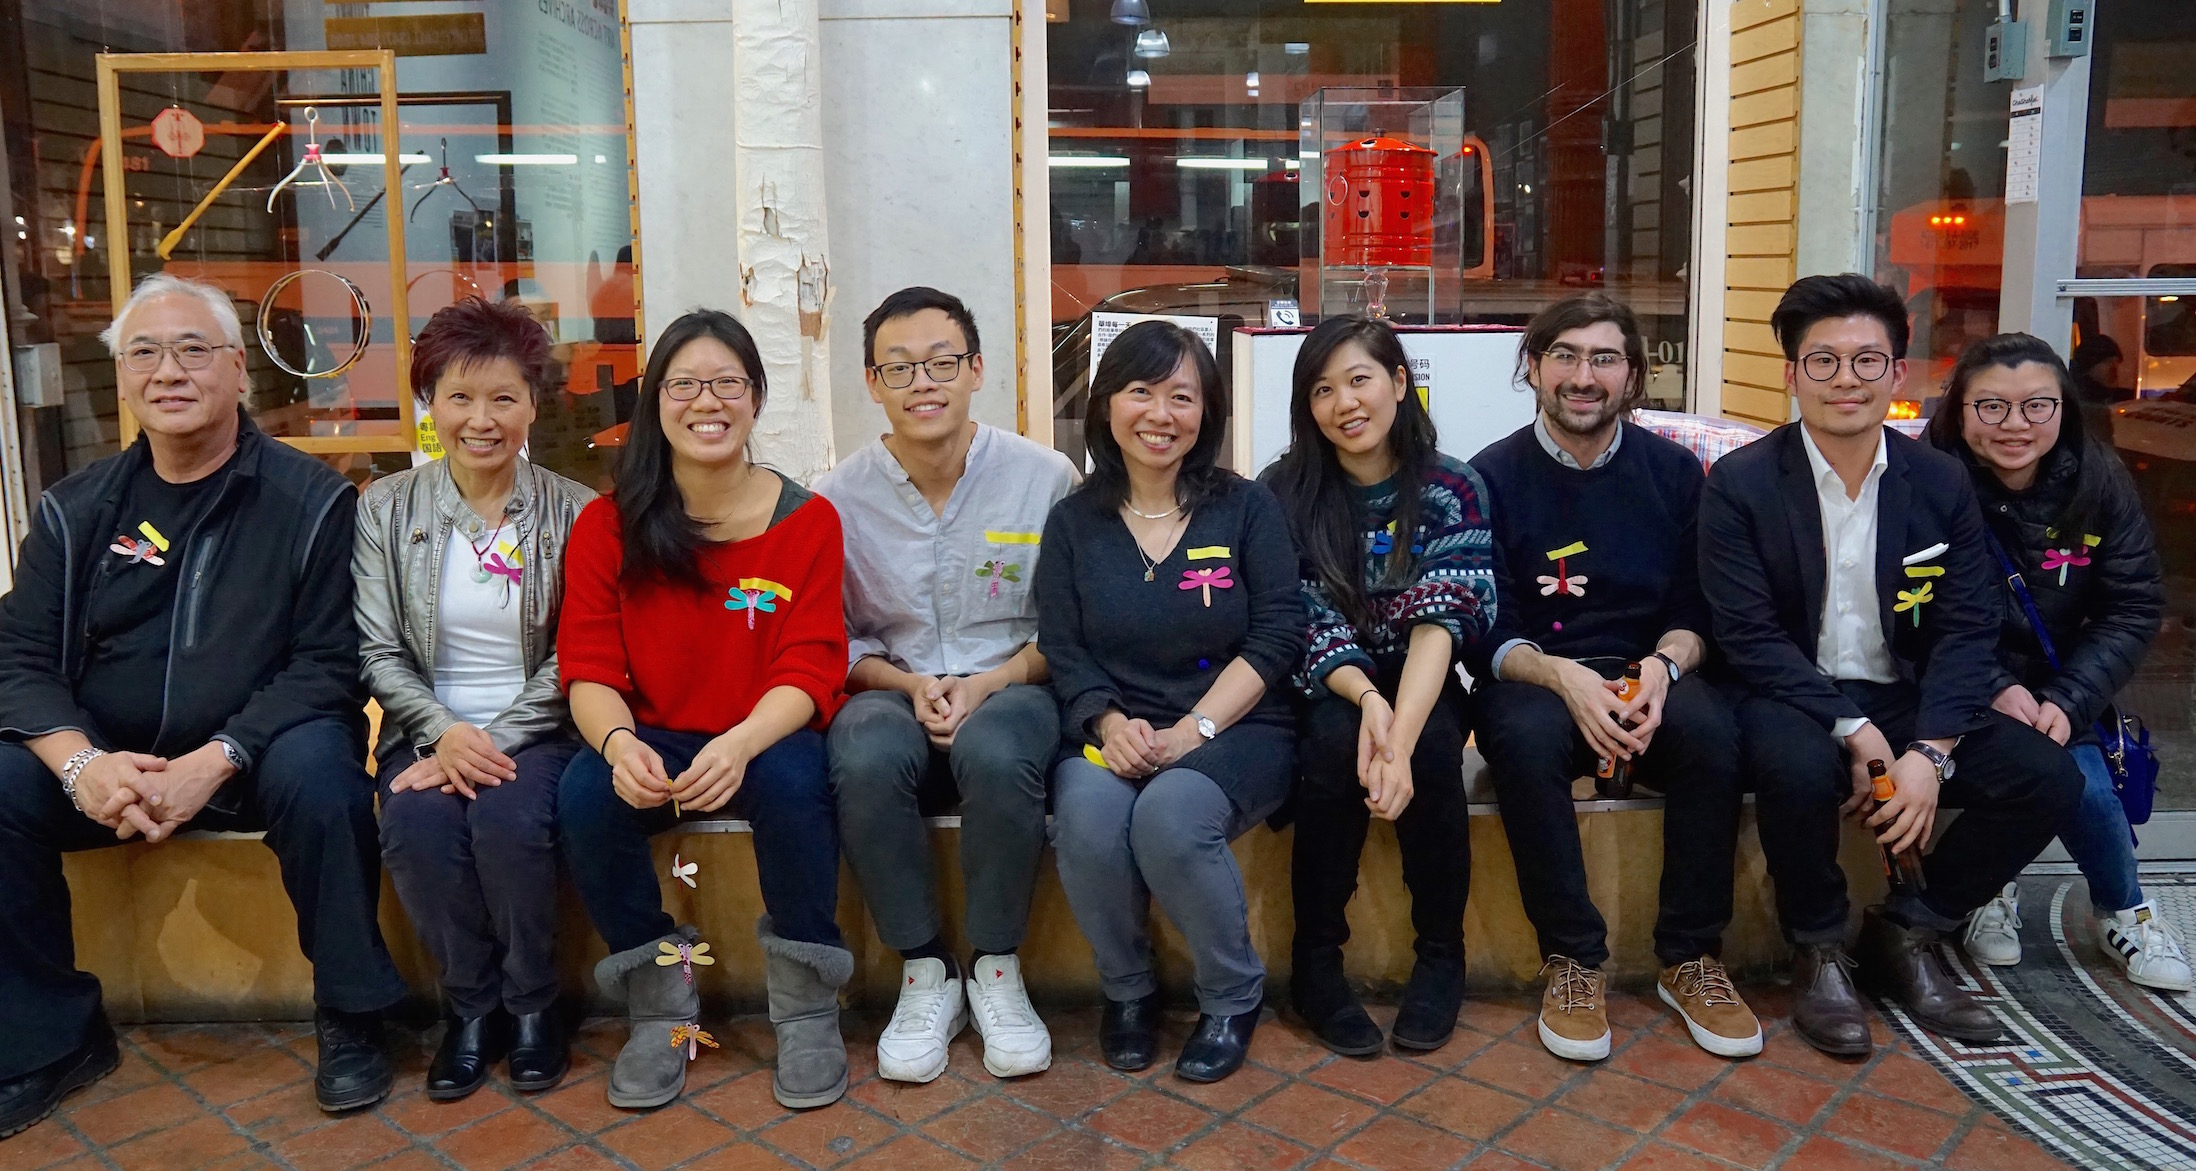 Our EVERYDAY CHINATOWN Project Team: Richard Young, Meemee Chin, Yin Kong, Simon Wu, Amy Chin, Jennifer Lai, Aaron Reiss,  (Luke Cheng, and  Belinda Lin didn't make it into the pic!)    And a big thanks to our community partners for lending us a space in their shop to display the project: Sophia Ng (Po Wing Hong), Kenneth Ma (Mott Optical), and Joanne Kwong (Pearl River Mart)